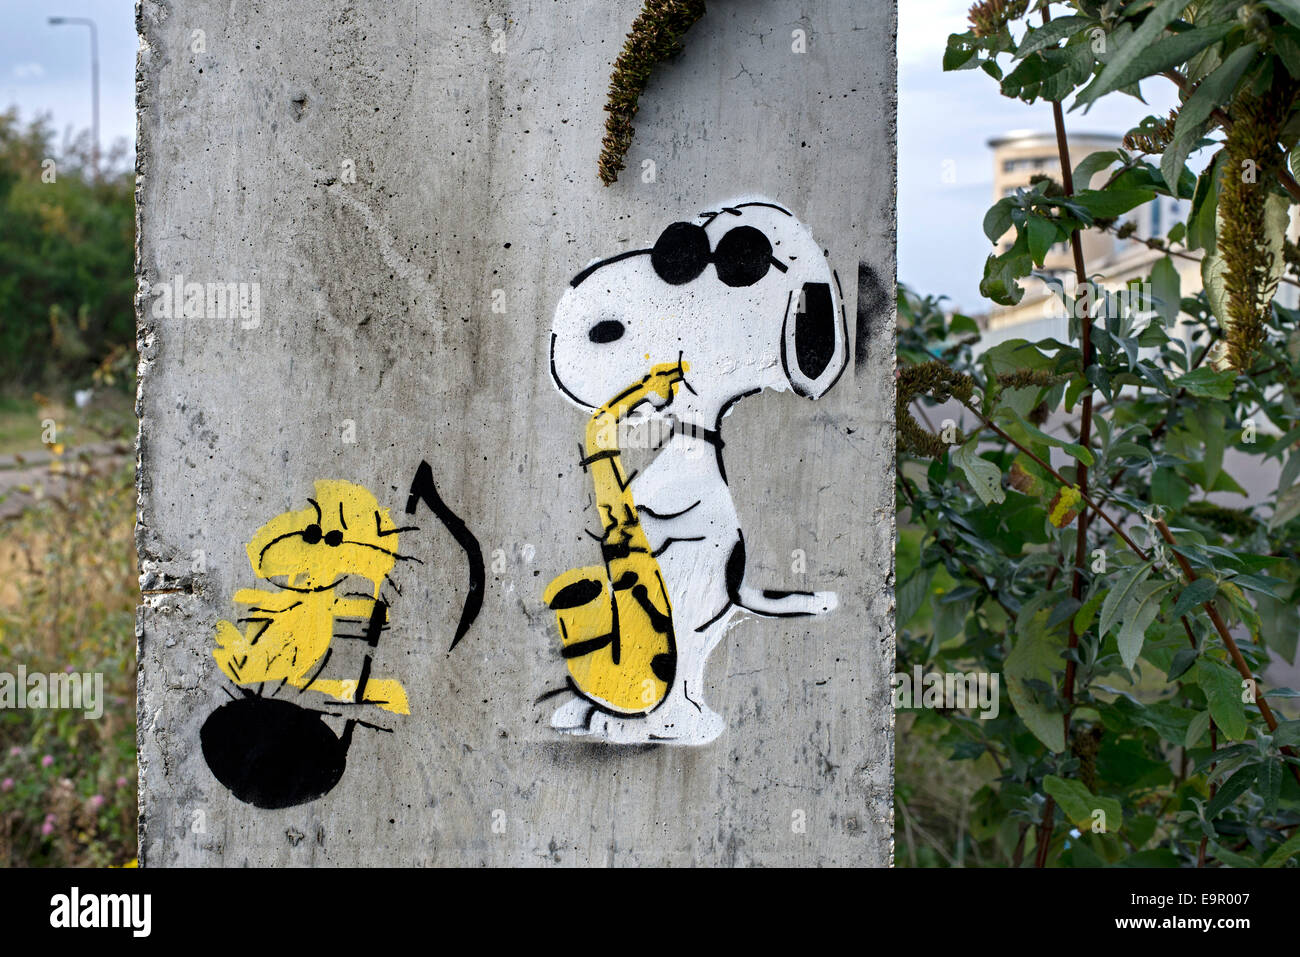 Stencil graffiti featuring the characters Snoopy and Woodstock from the Peanuts cartoon series, created by  Charles - Stock Image